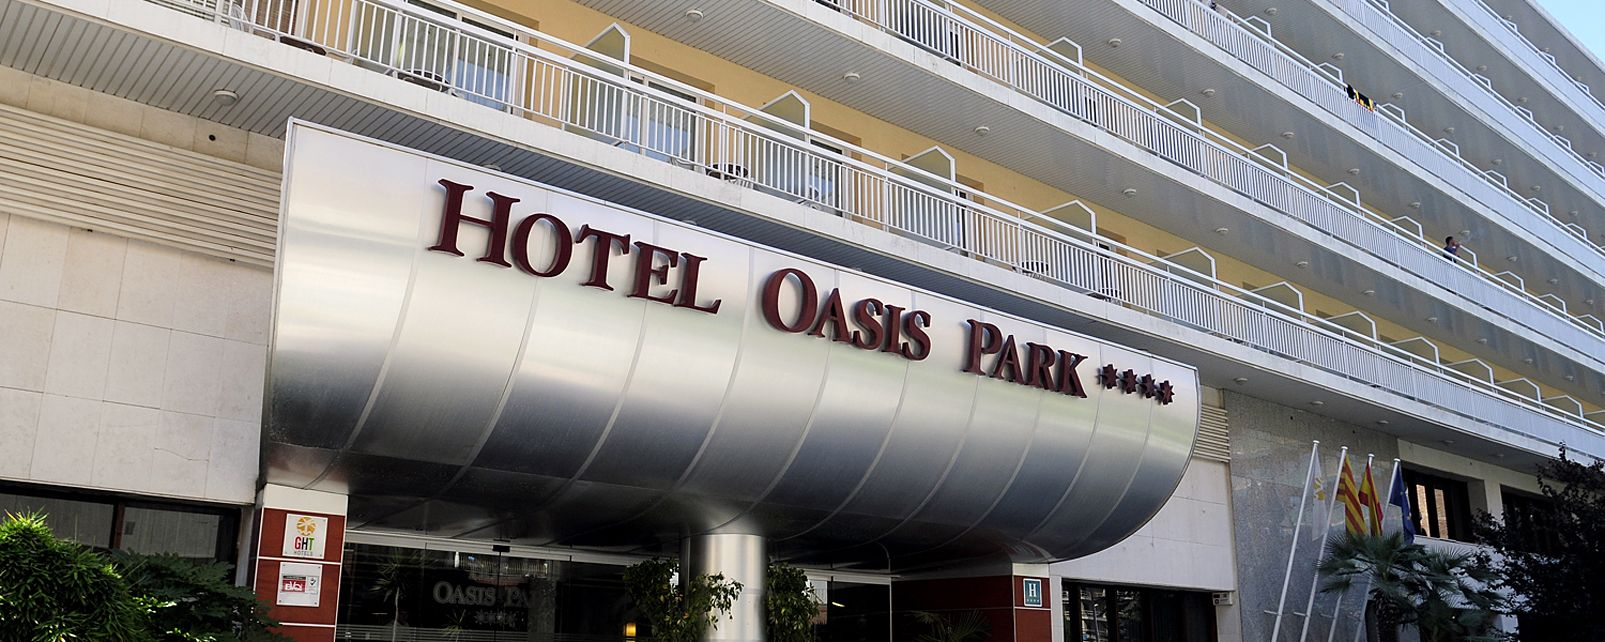 Hotel  Oasis Park